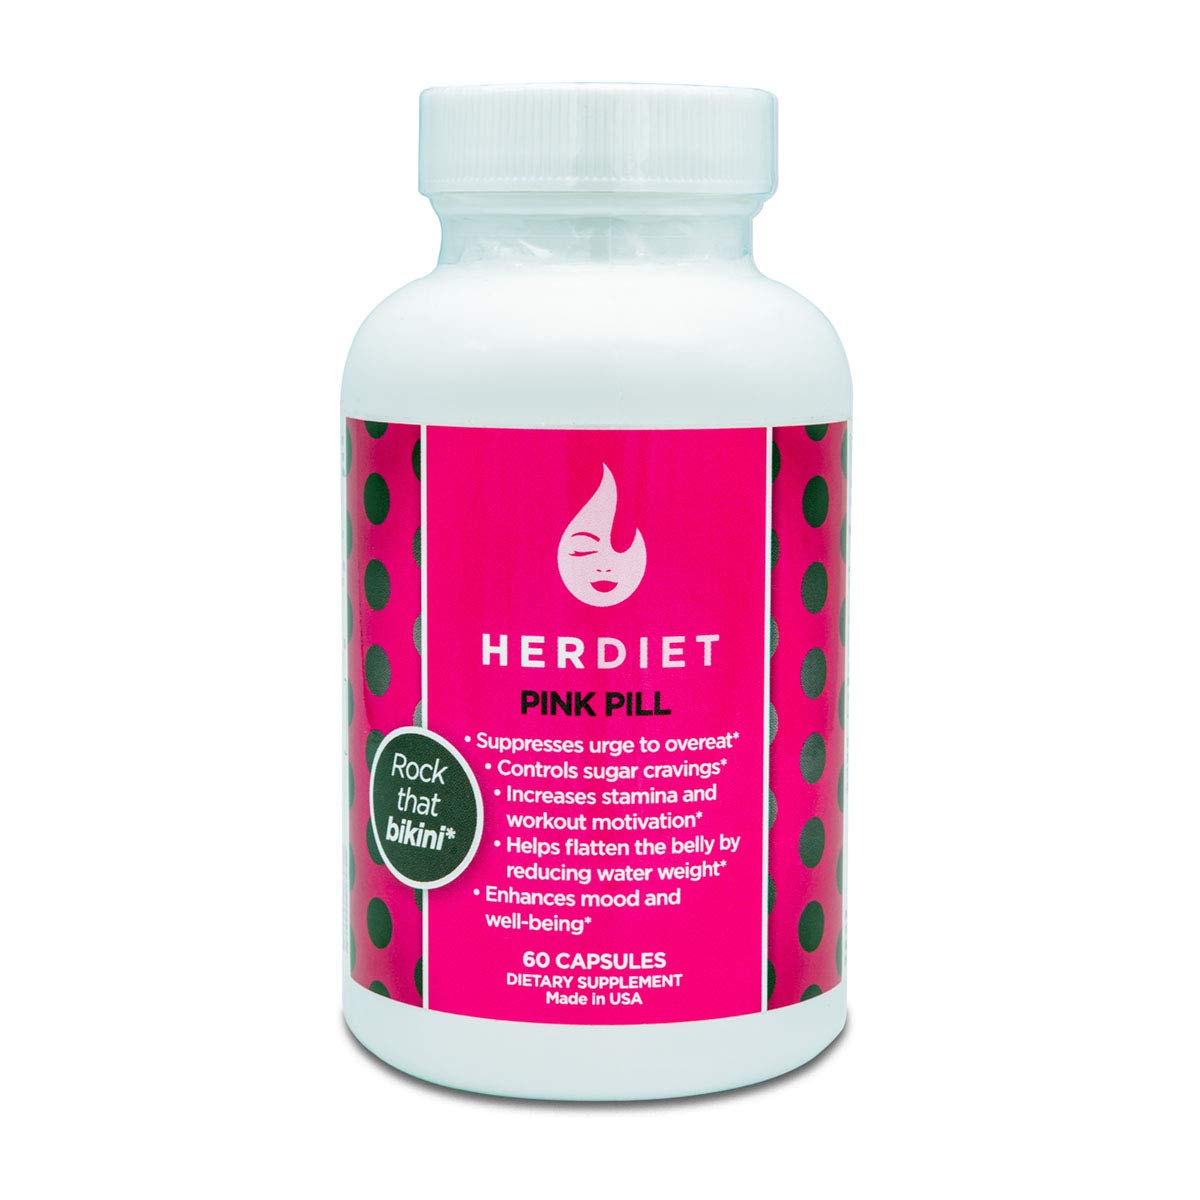 HER DIET Pink - Weight Loss Pills for Women - Thermogenic Fat Loss Supplement - Increased Energy - Appetite Suppressant - Prevent Overeating - Curb Cravings by HER DIET